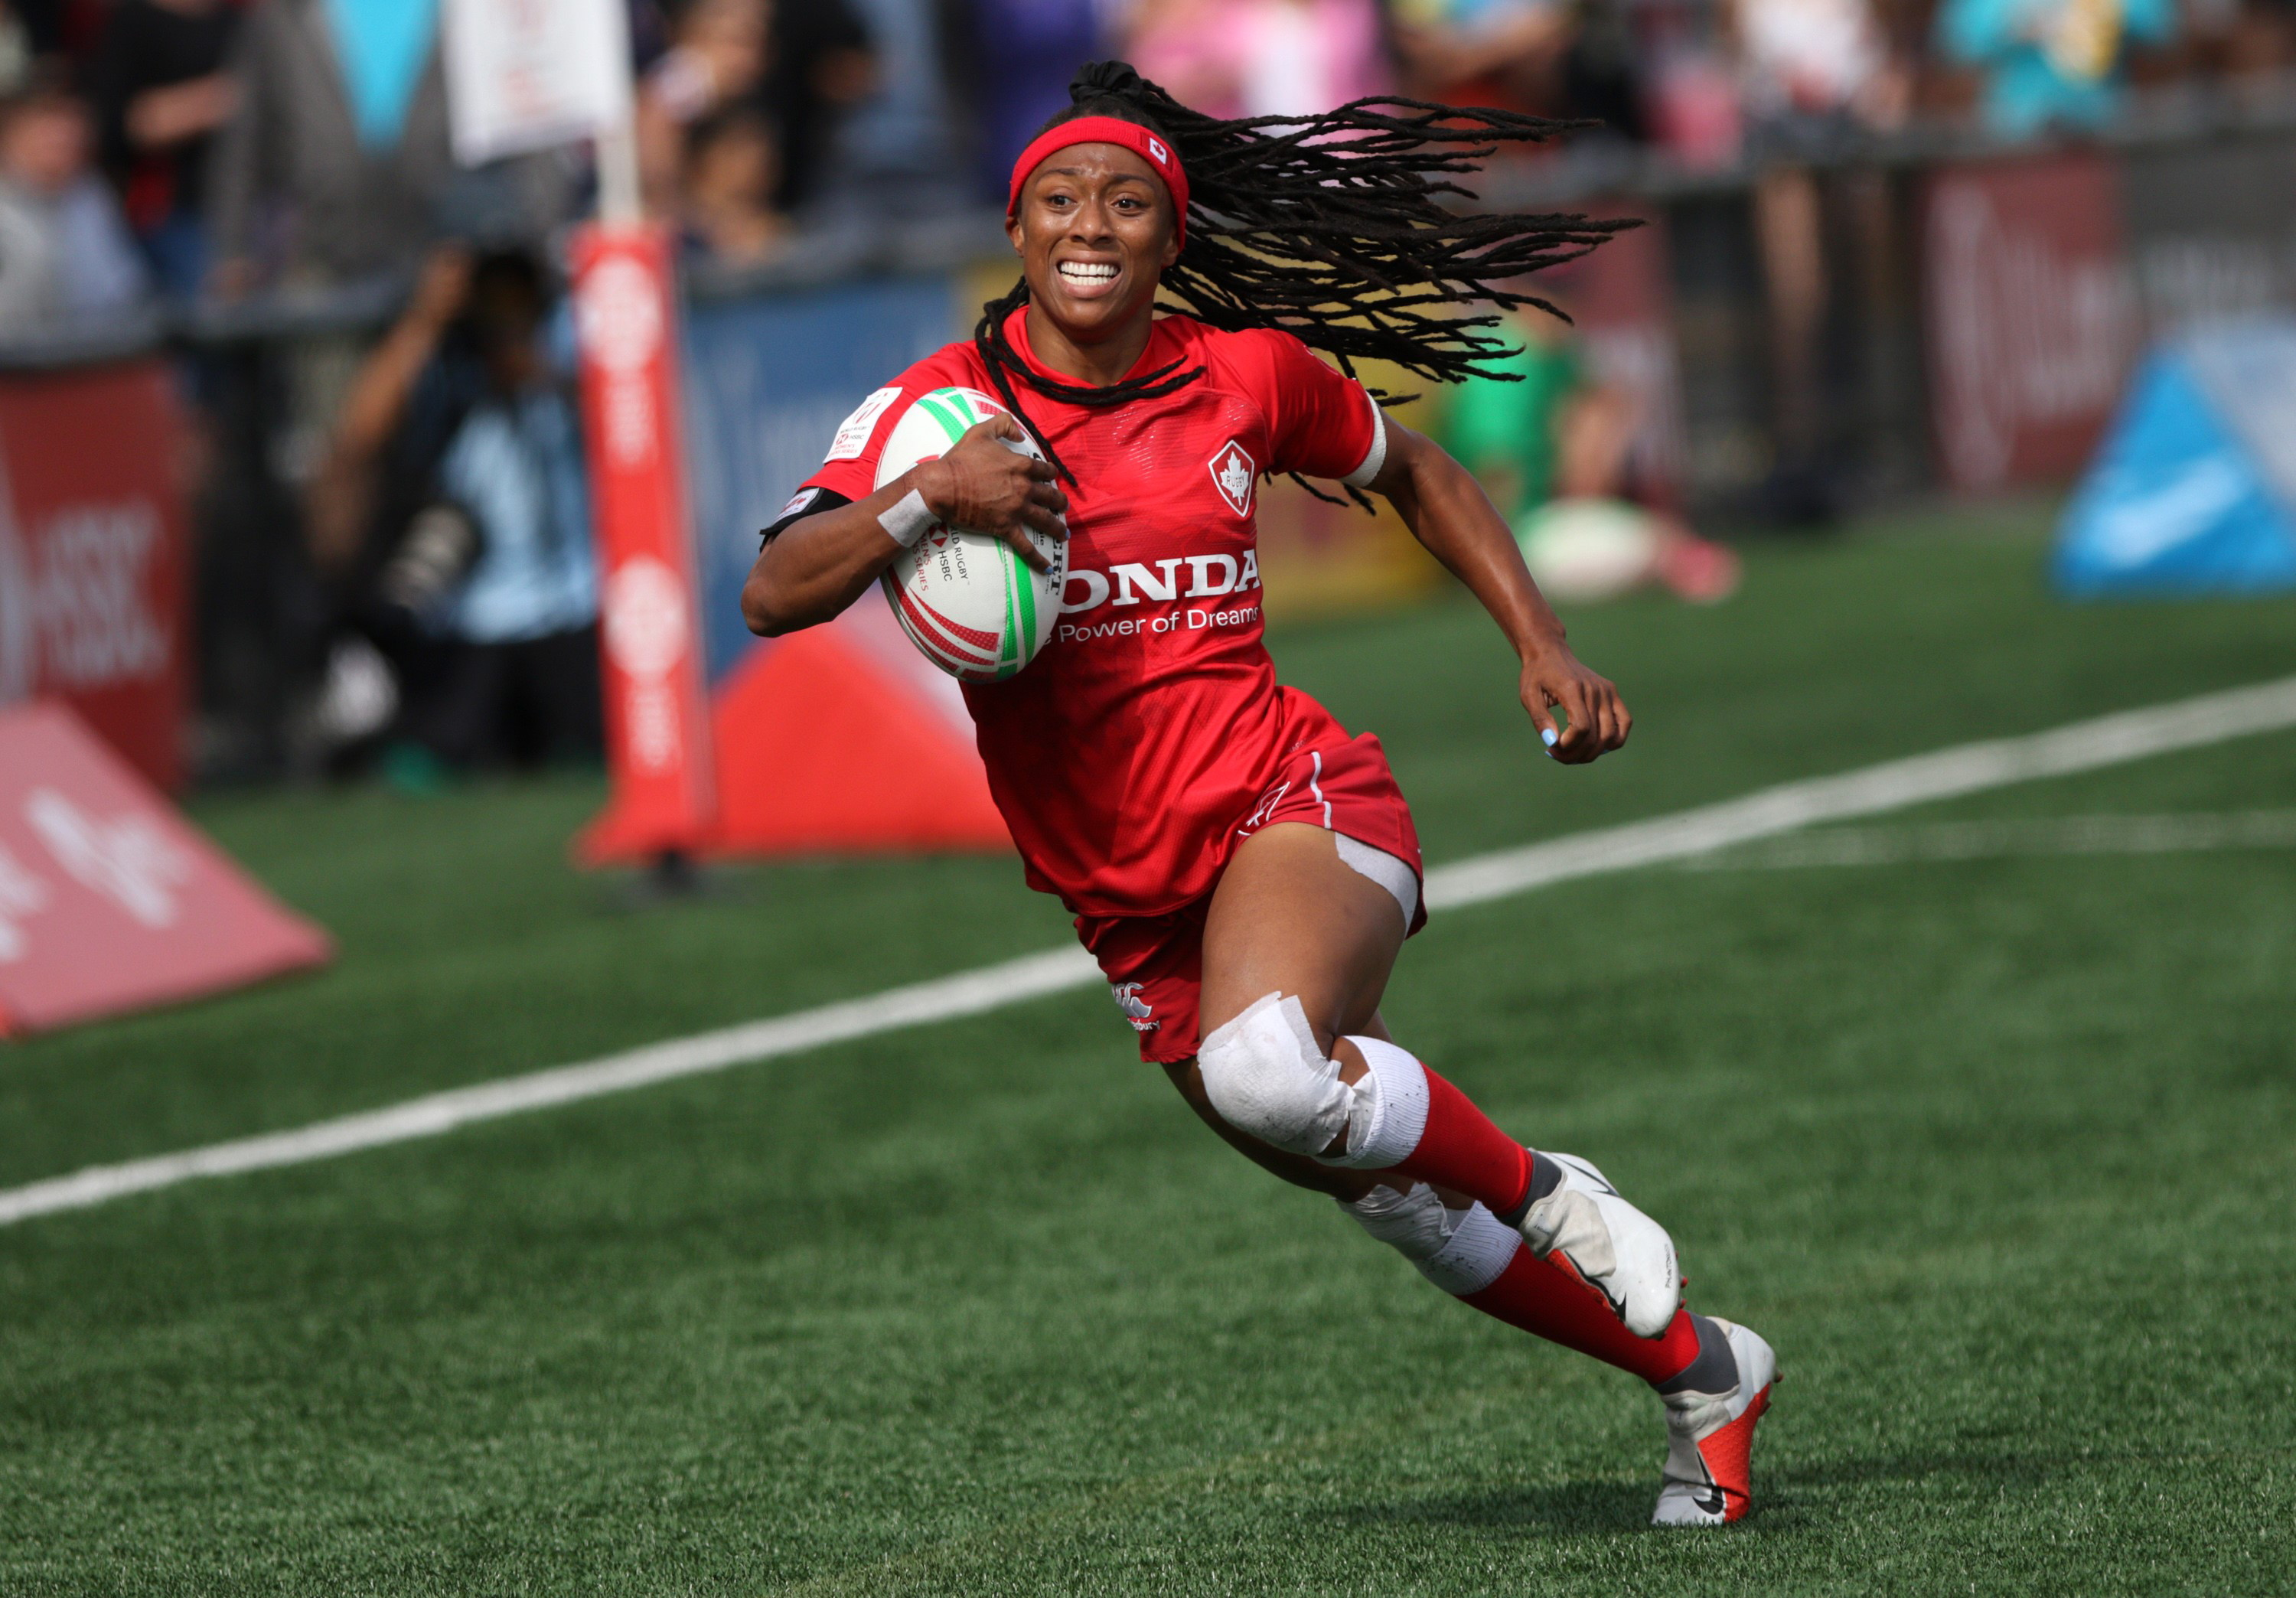 Charity Williams holds the rugby ball and runs.